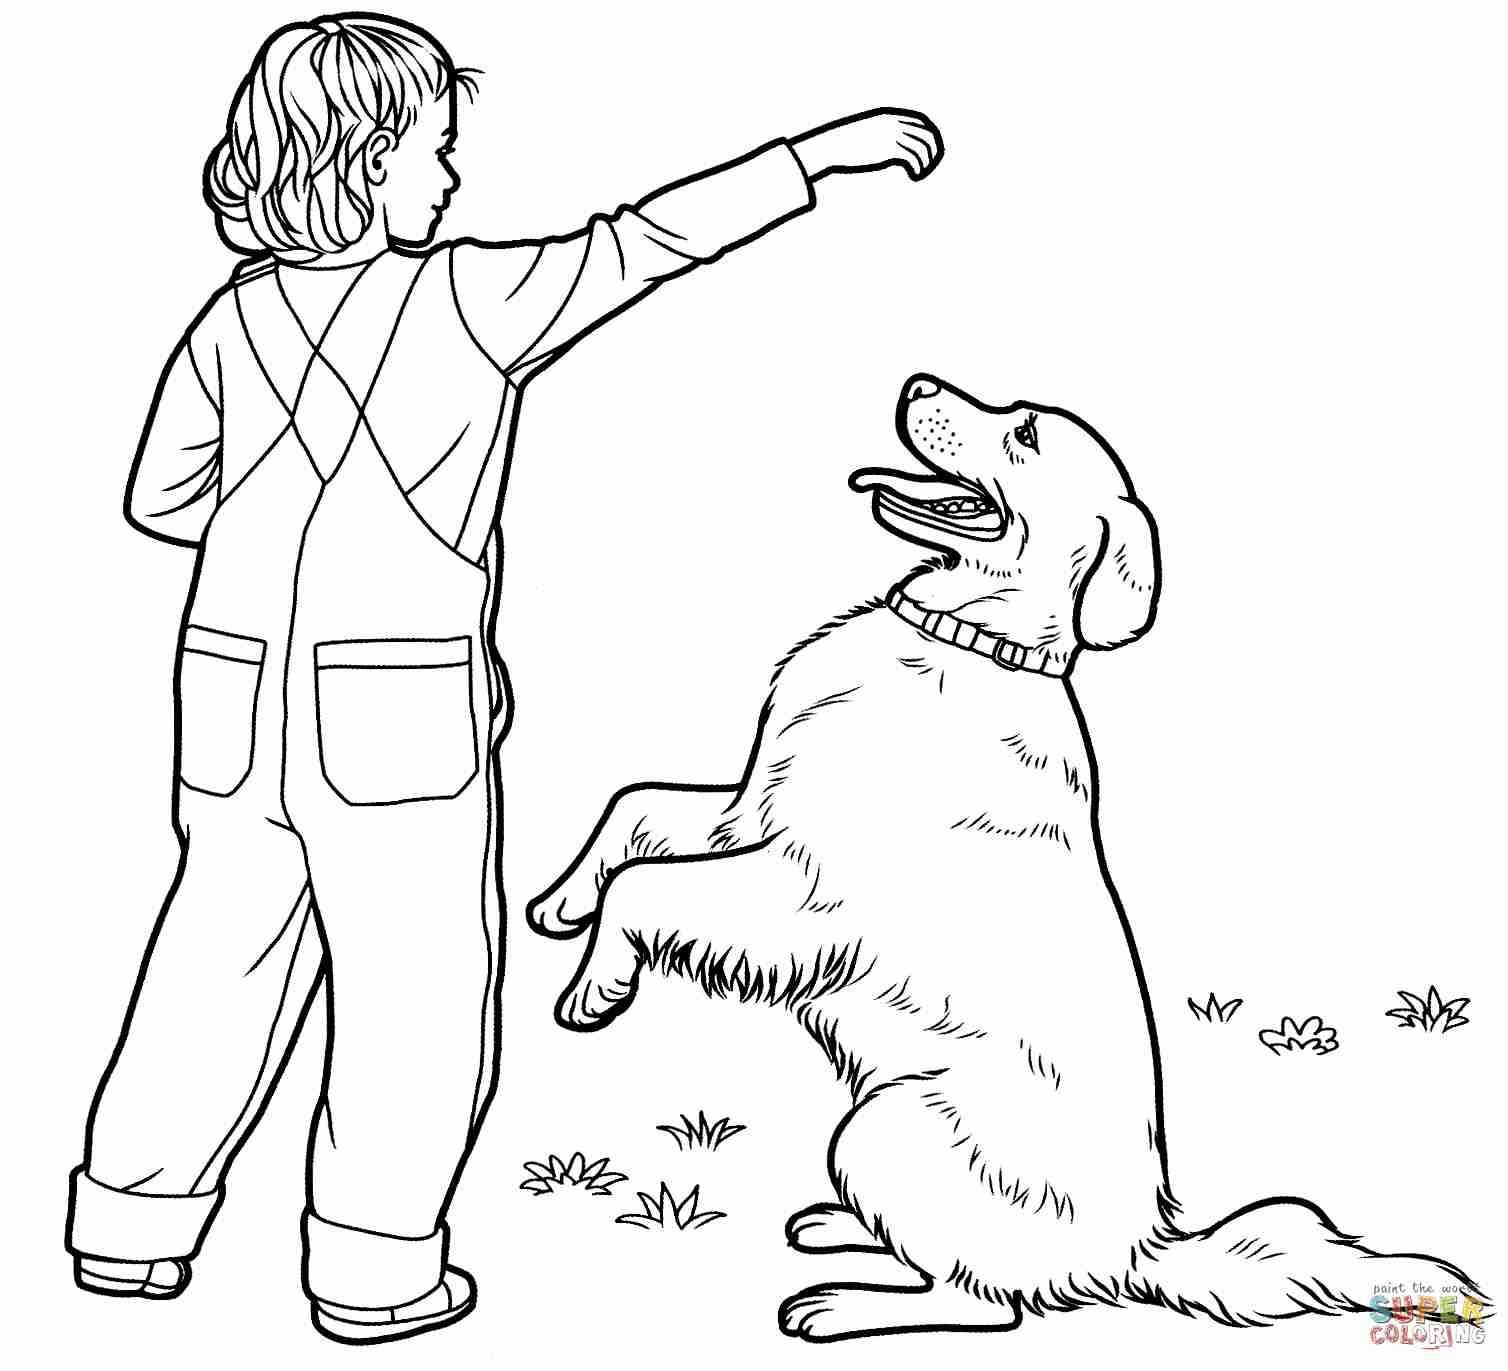 Golden Retriever Coloring Page Golden Retriever Coloring Pages Babbleedition Albanysinsanity Com Albanysinsanitycom B Golden Retriever Retriever Beestjes